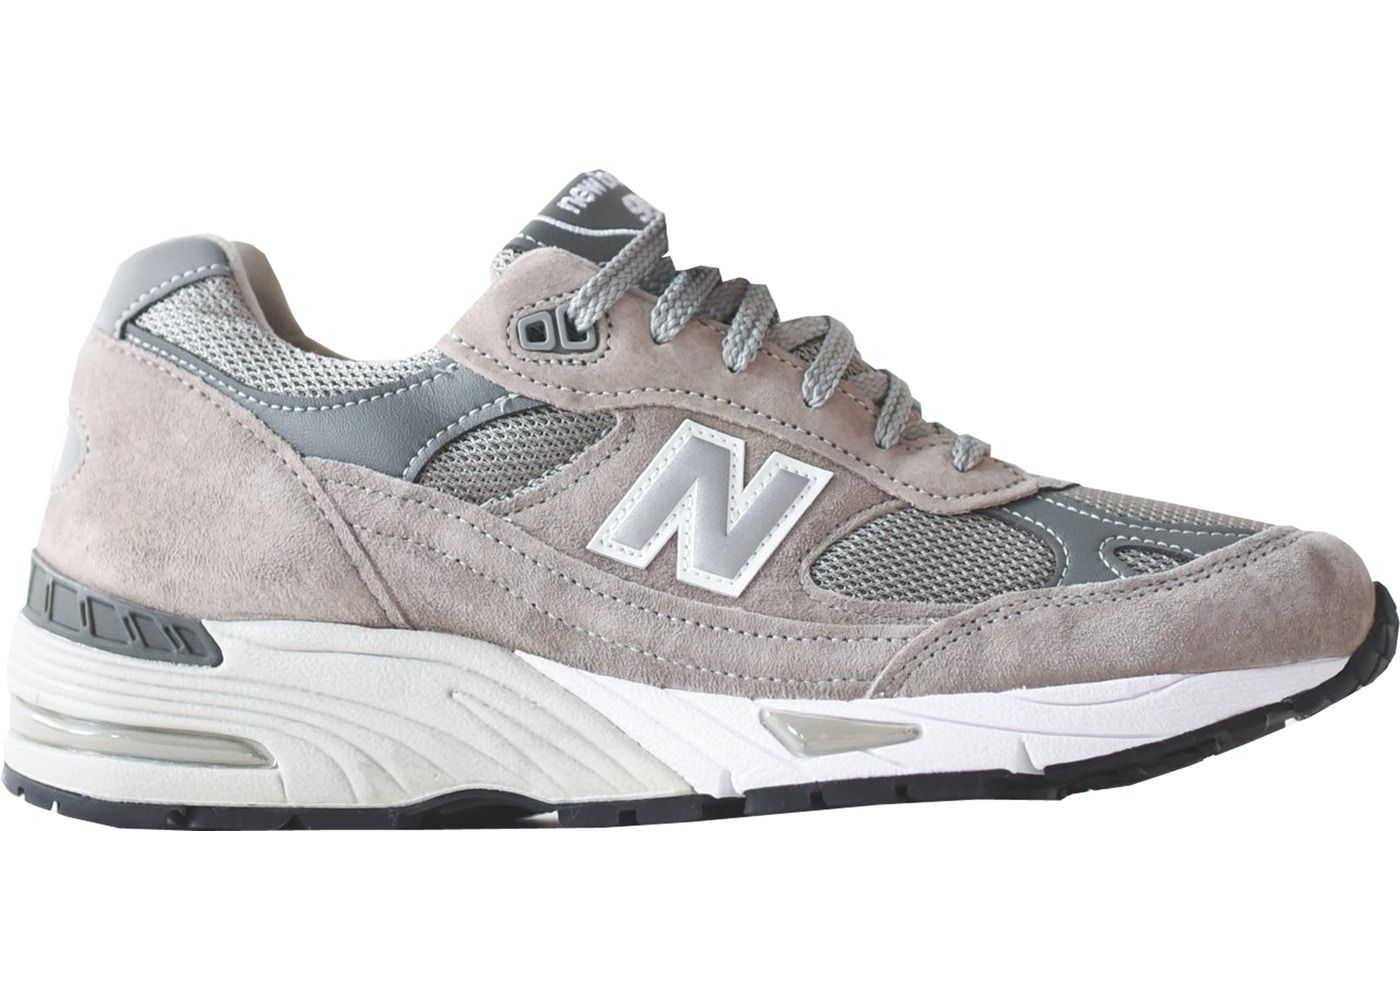 New Balance 991 Kith Grey In 2020 New Balance Sneakers Sneakers Shoes Outfit